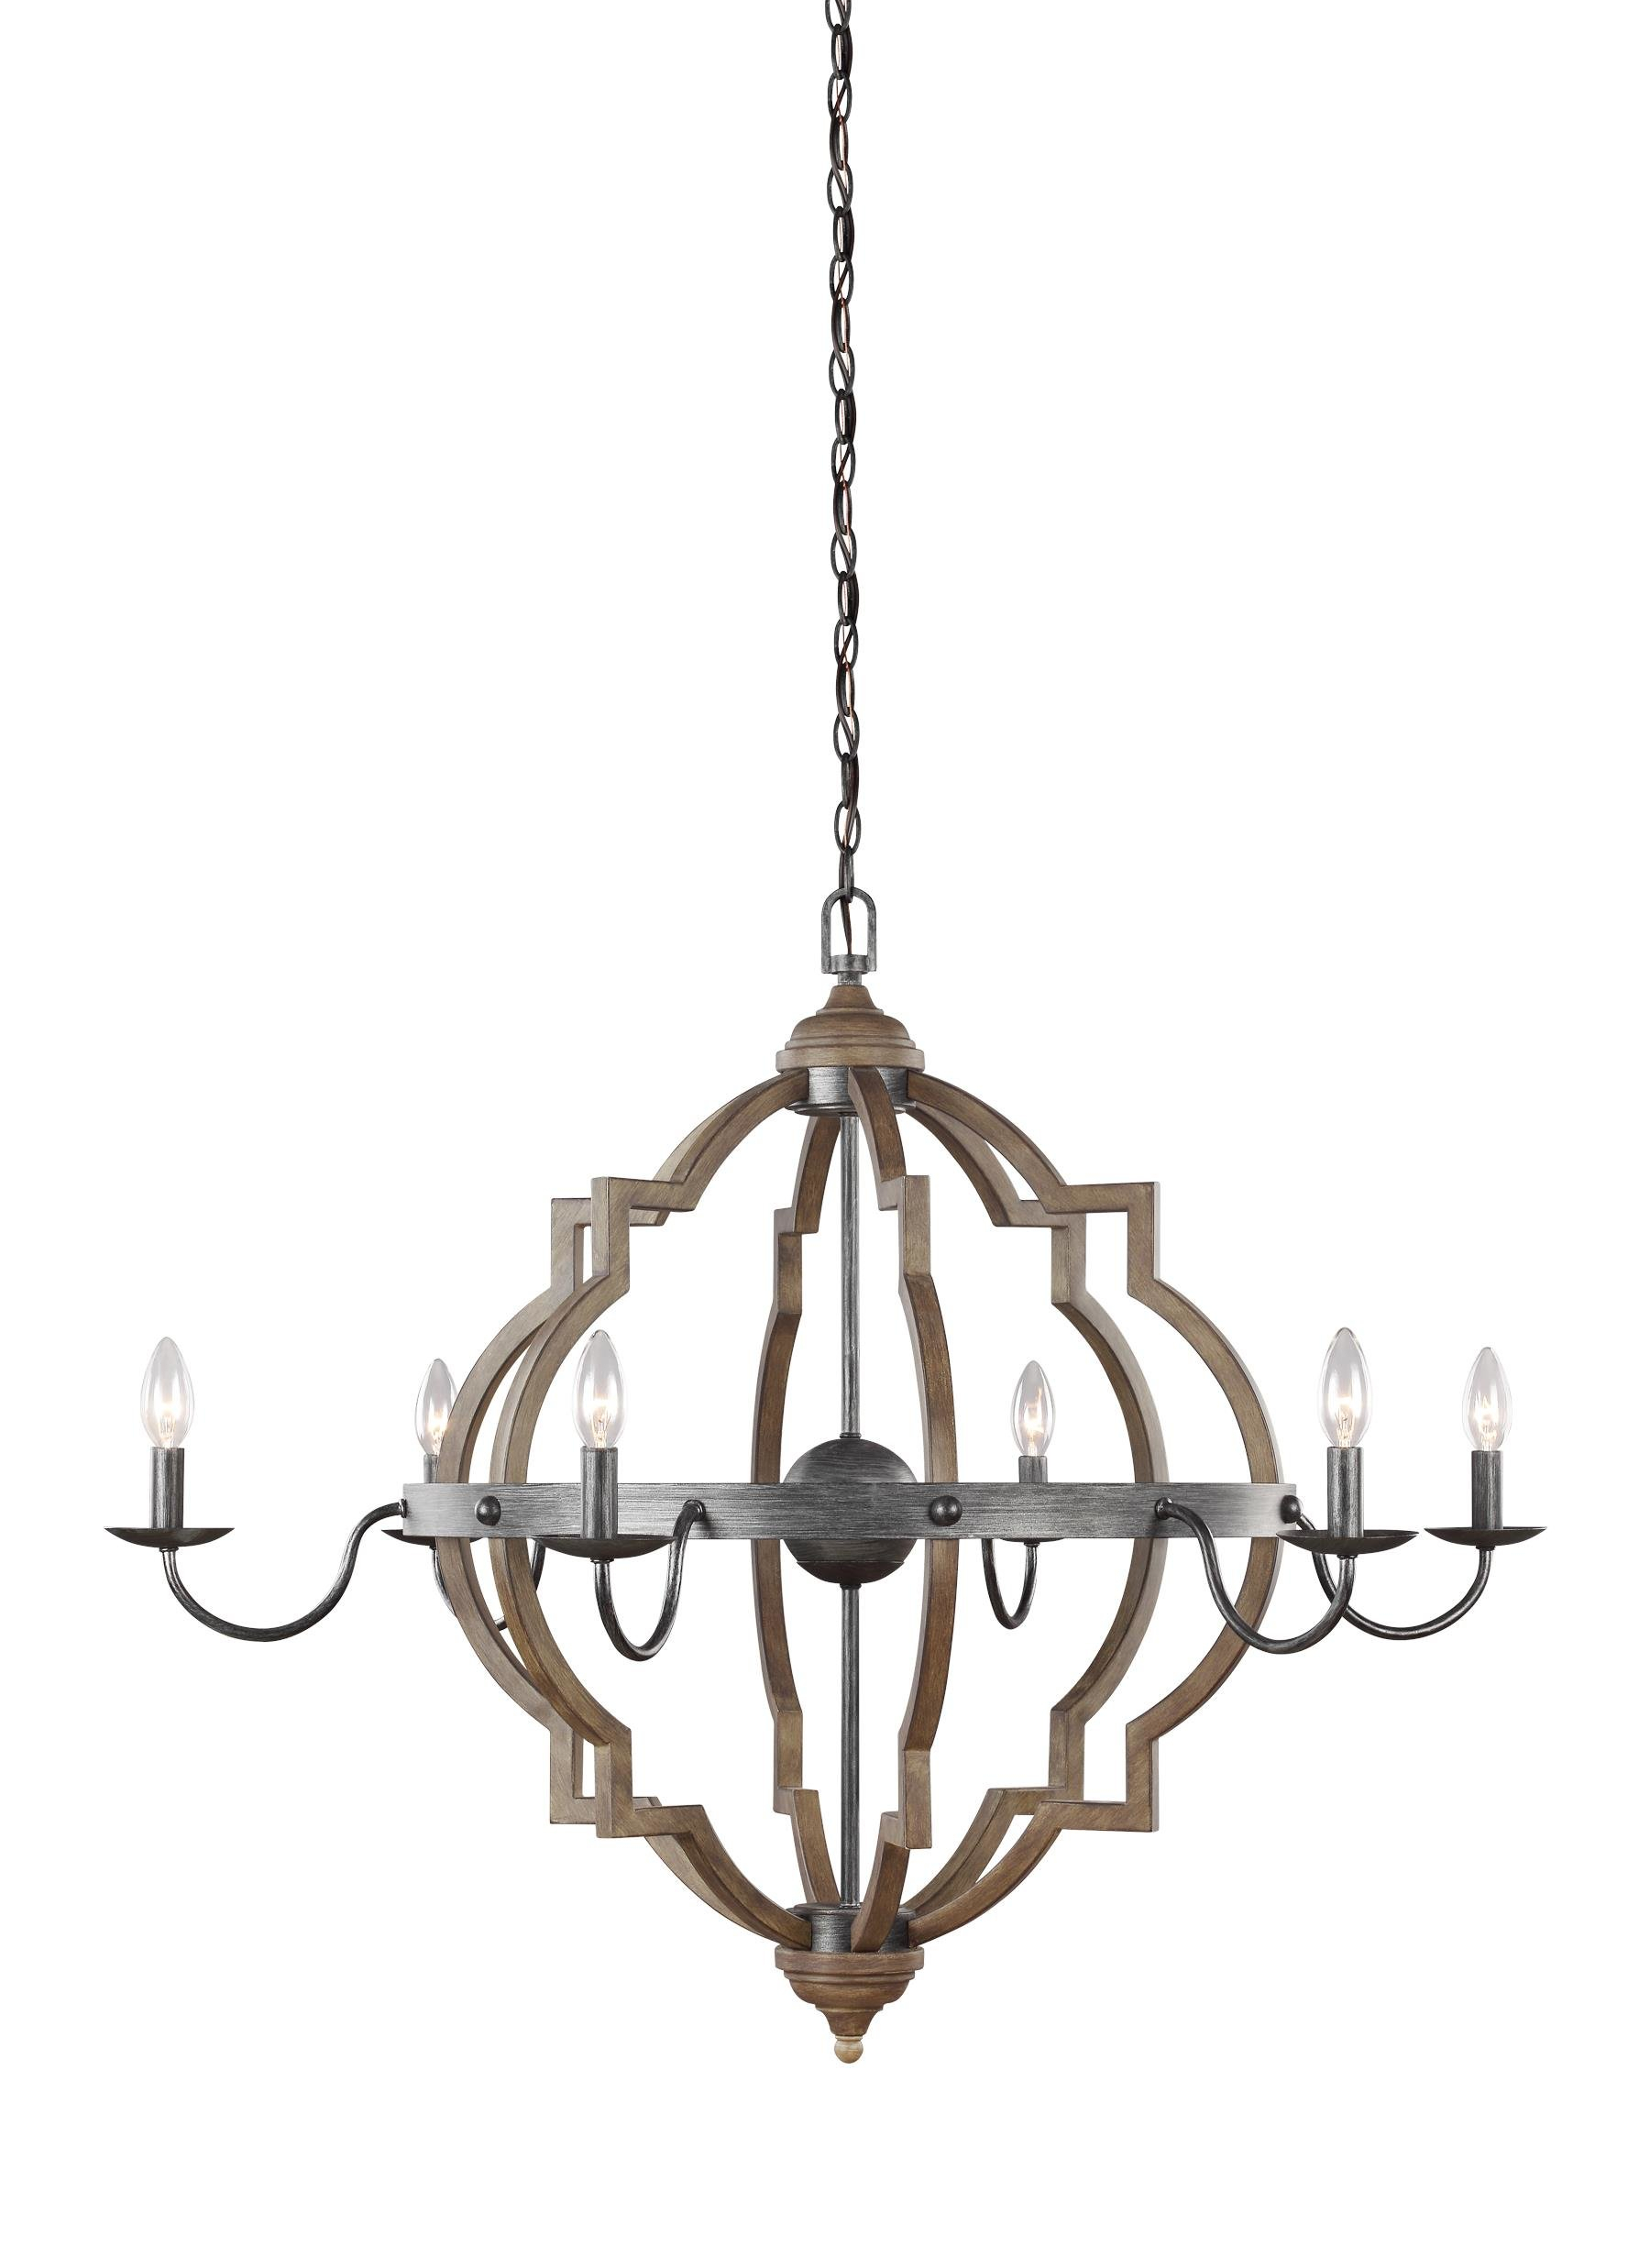 Donna 6 Light Candle Style Chandelier Throughout Bennington 6 Light Candle Style Chandeliers (Photo 5 of 30)